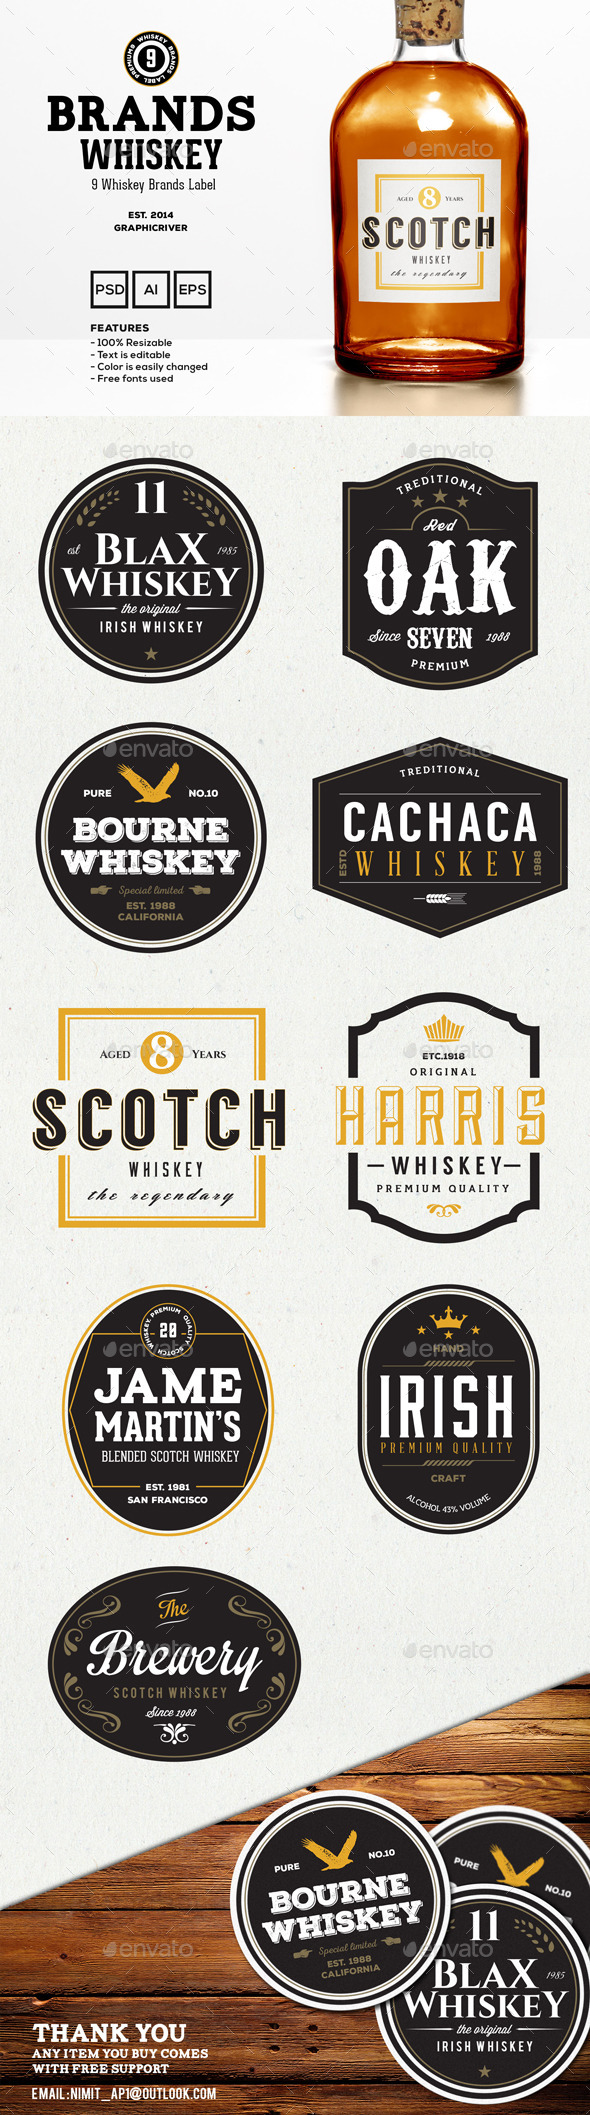 Scotch Whisky Blends - Pinterest